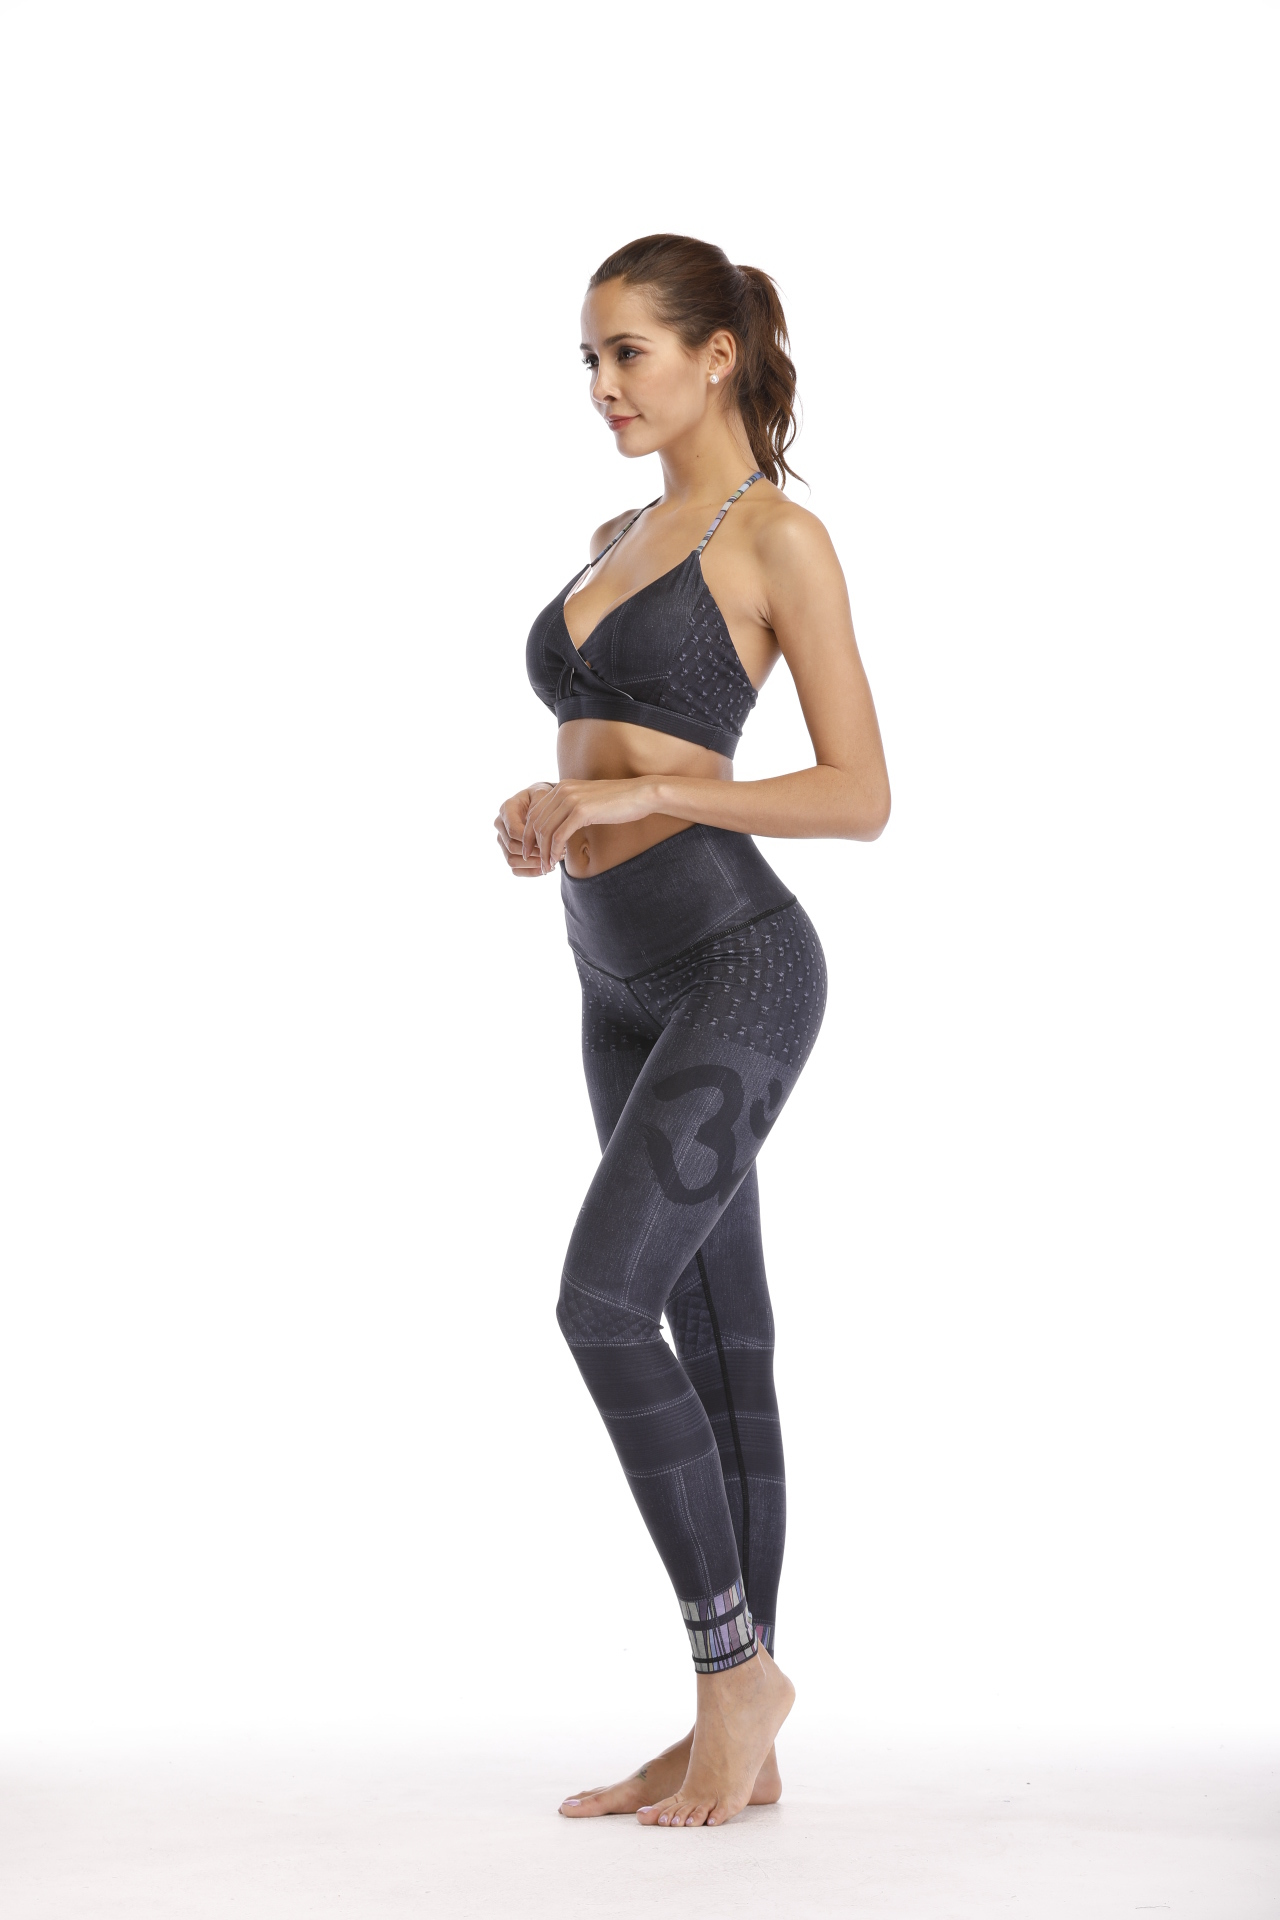 Printed Gym Wear Girls Yoga Bra And Pants With Strings